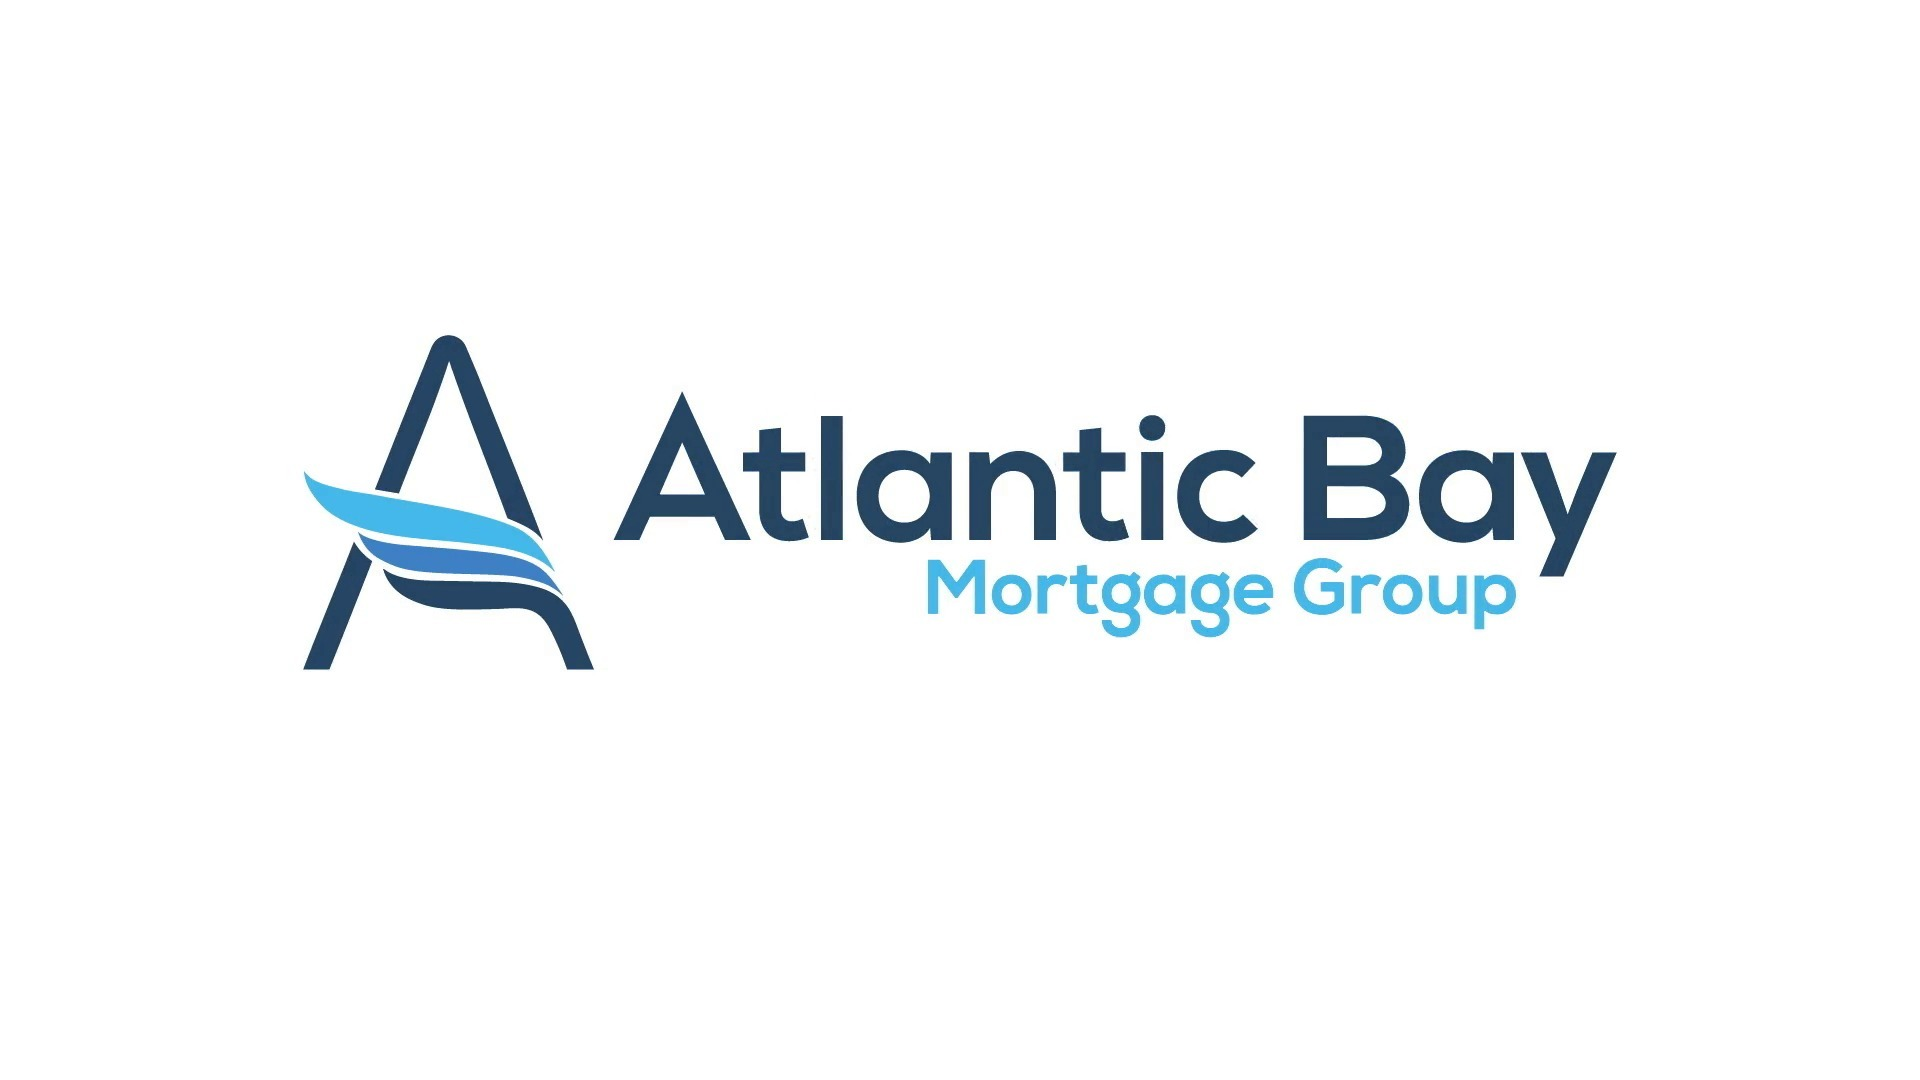 Financial Services Pre Employment Testing Talent Assessment for Atlantic Bay Mortgage Group